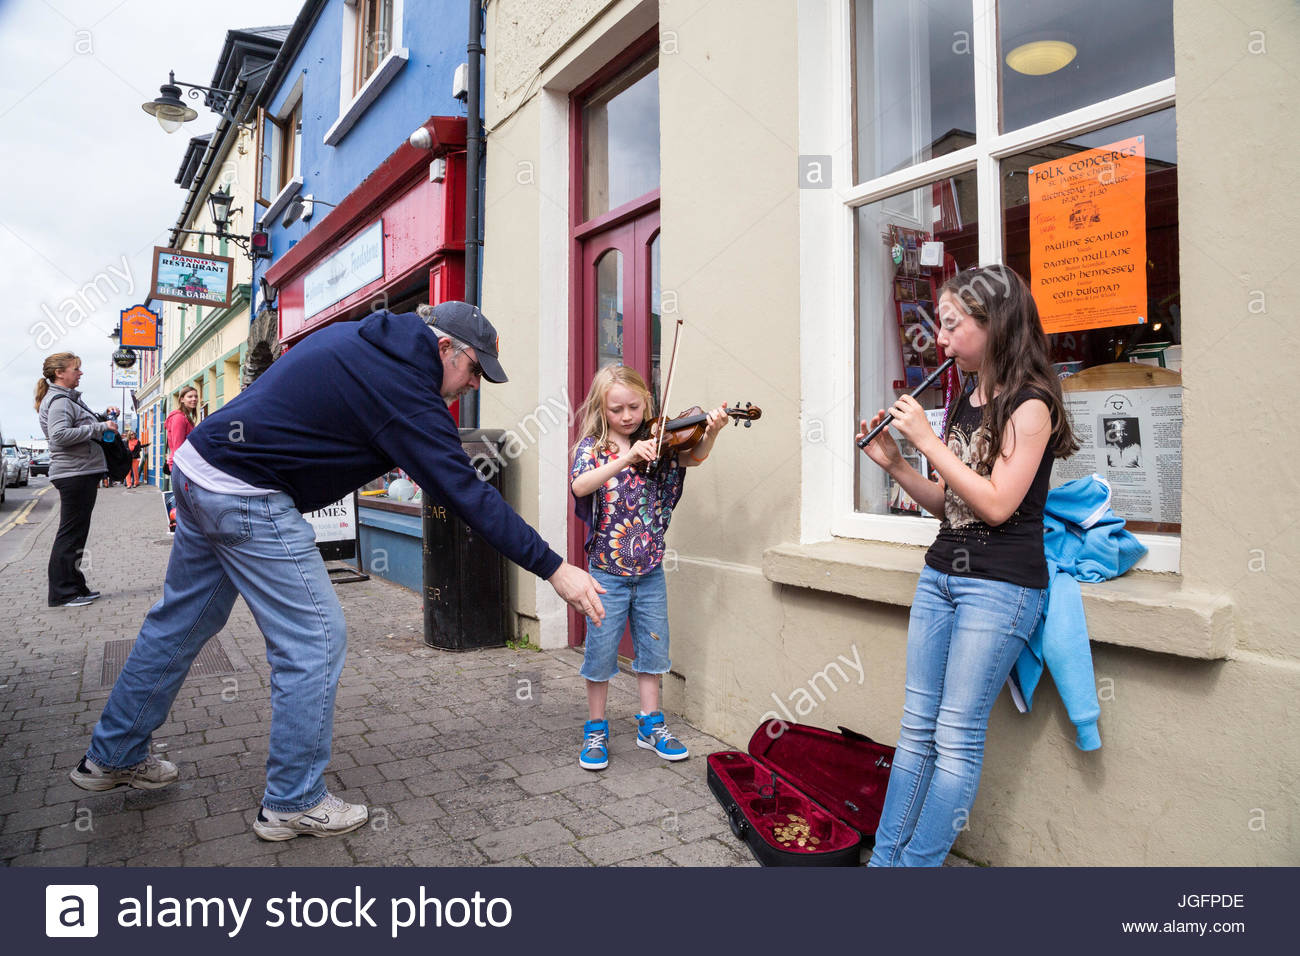 Girls play music on the street in Longford to earn ice cream money. - Stock Image